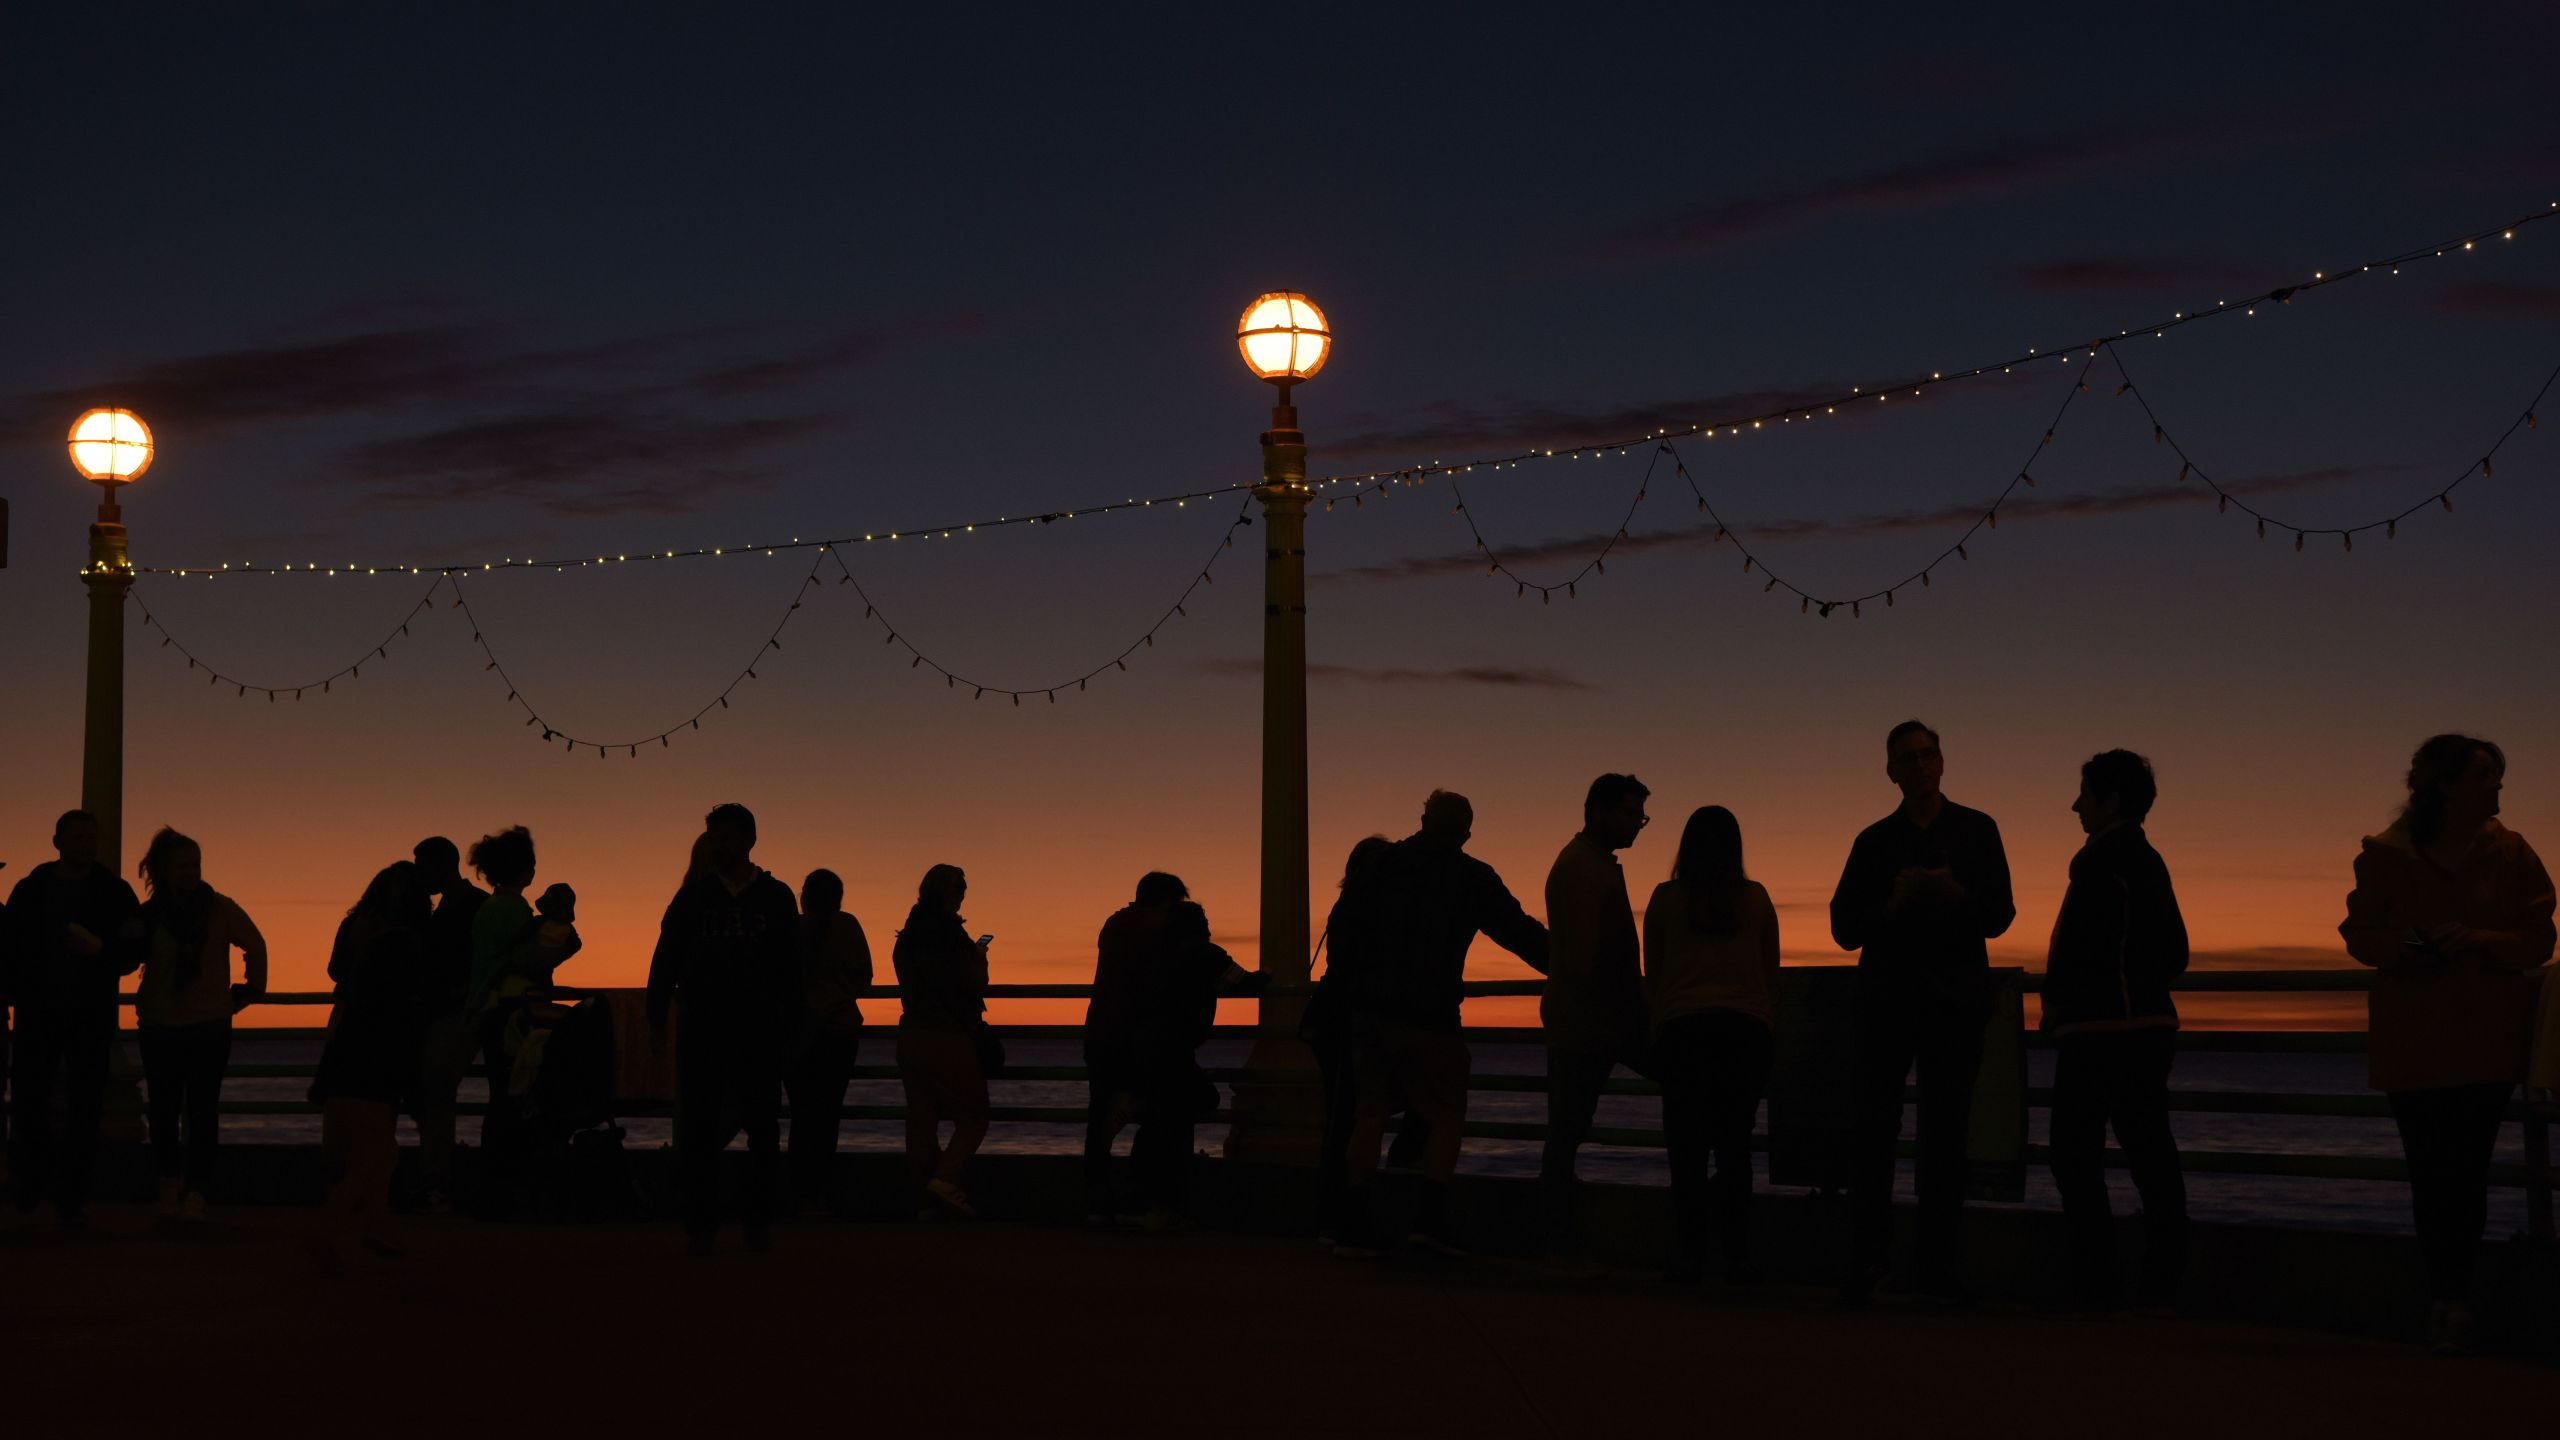 People enjoy the last sunset of the year on the pier in Manhattan Beach on Dec. 31, 2019. (Credit: Agustin Paullier / AFP / Getty Images)